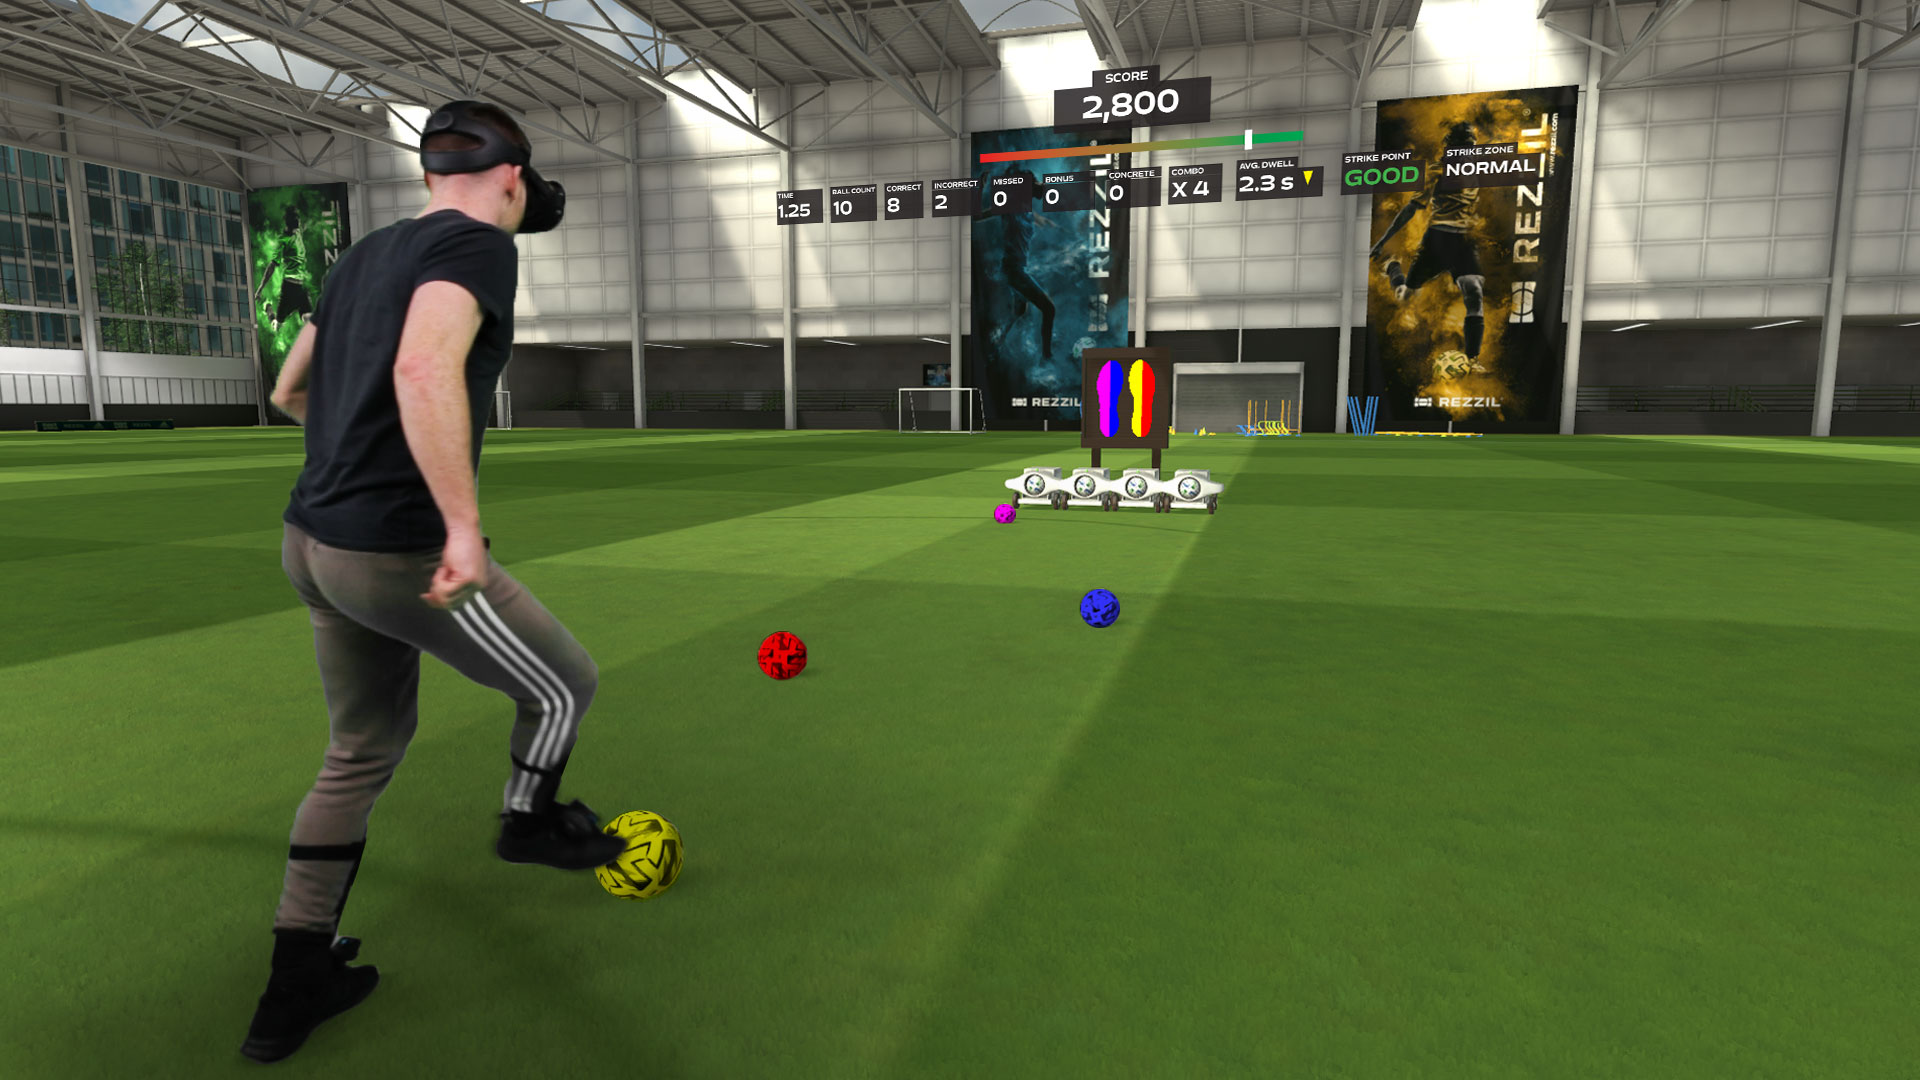 Rezzil's soccer training in VR is quite a workout   Engadget